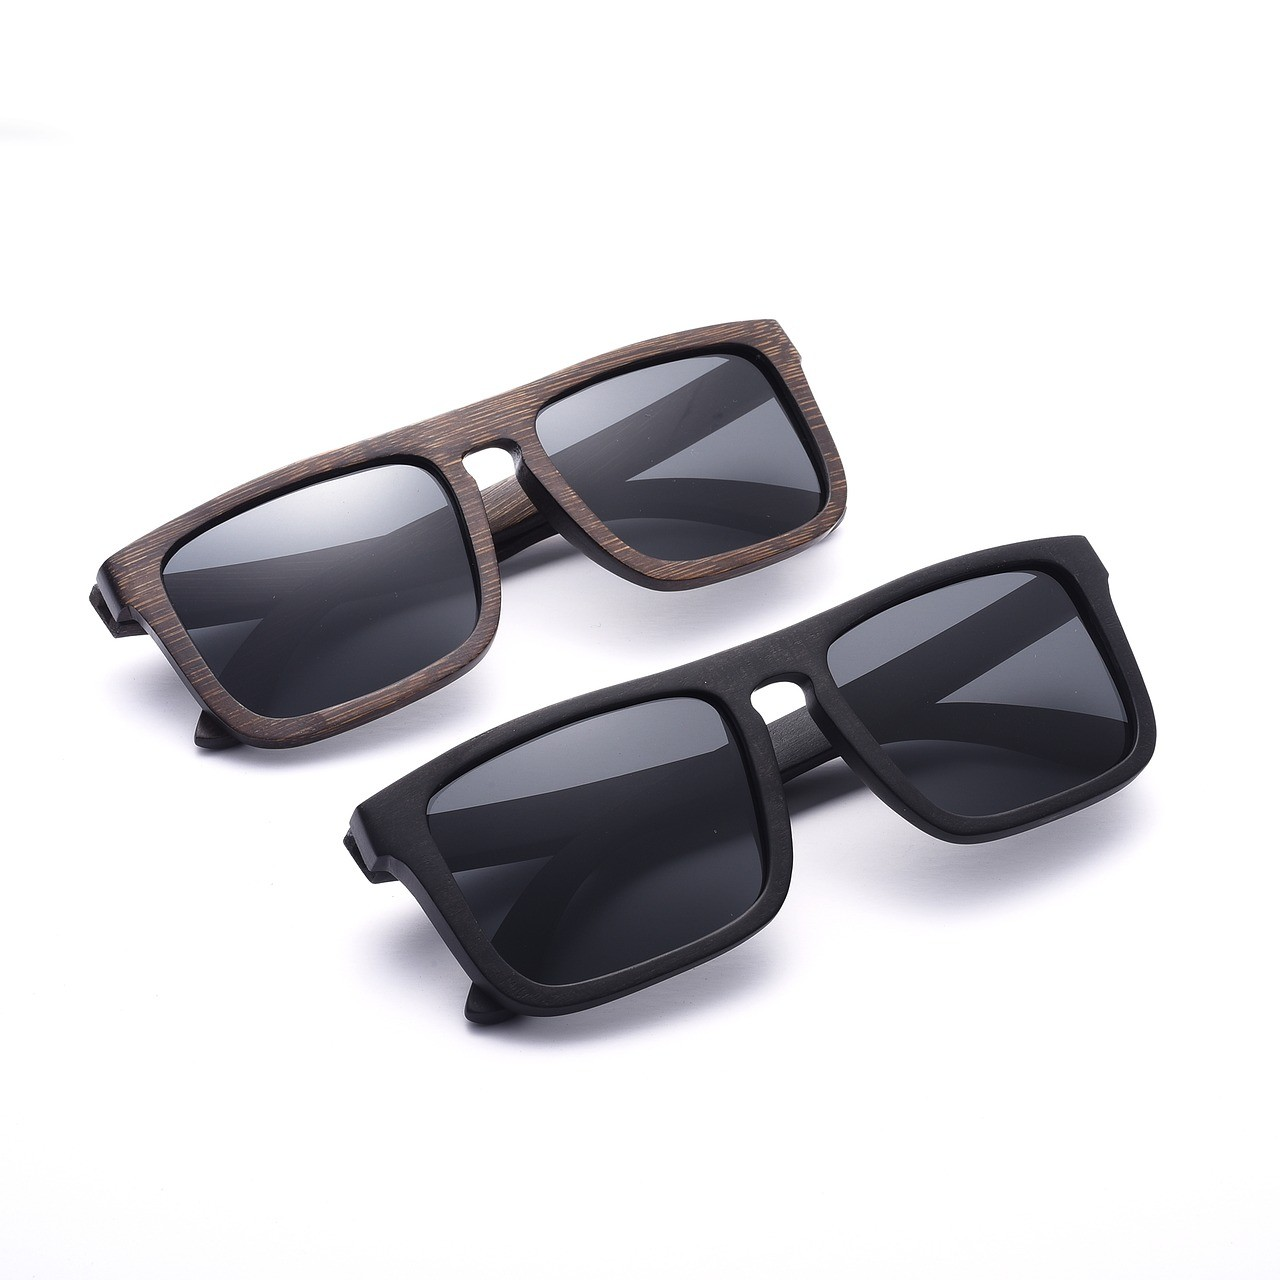 wood-sunglasses-2500243_1280